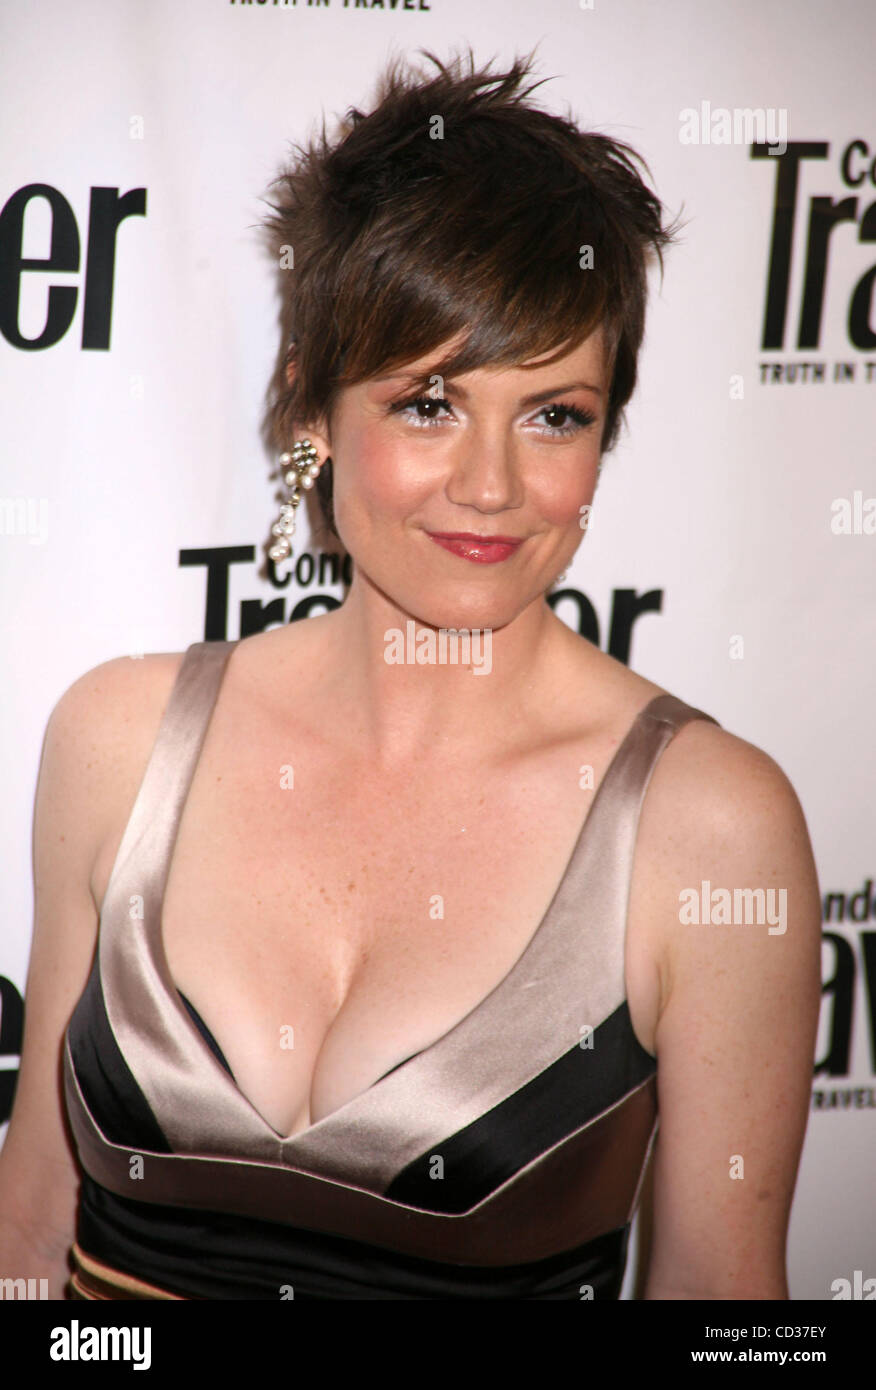 Watch Zoe McLellan video